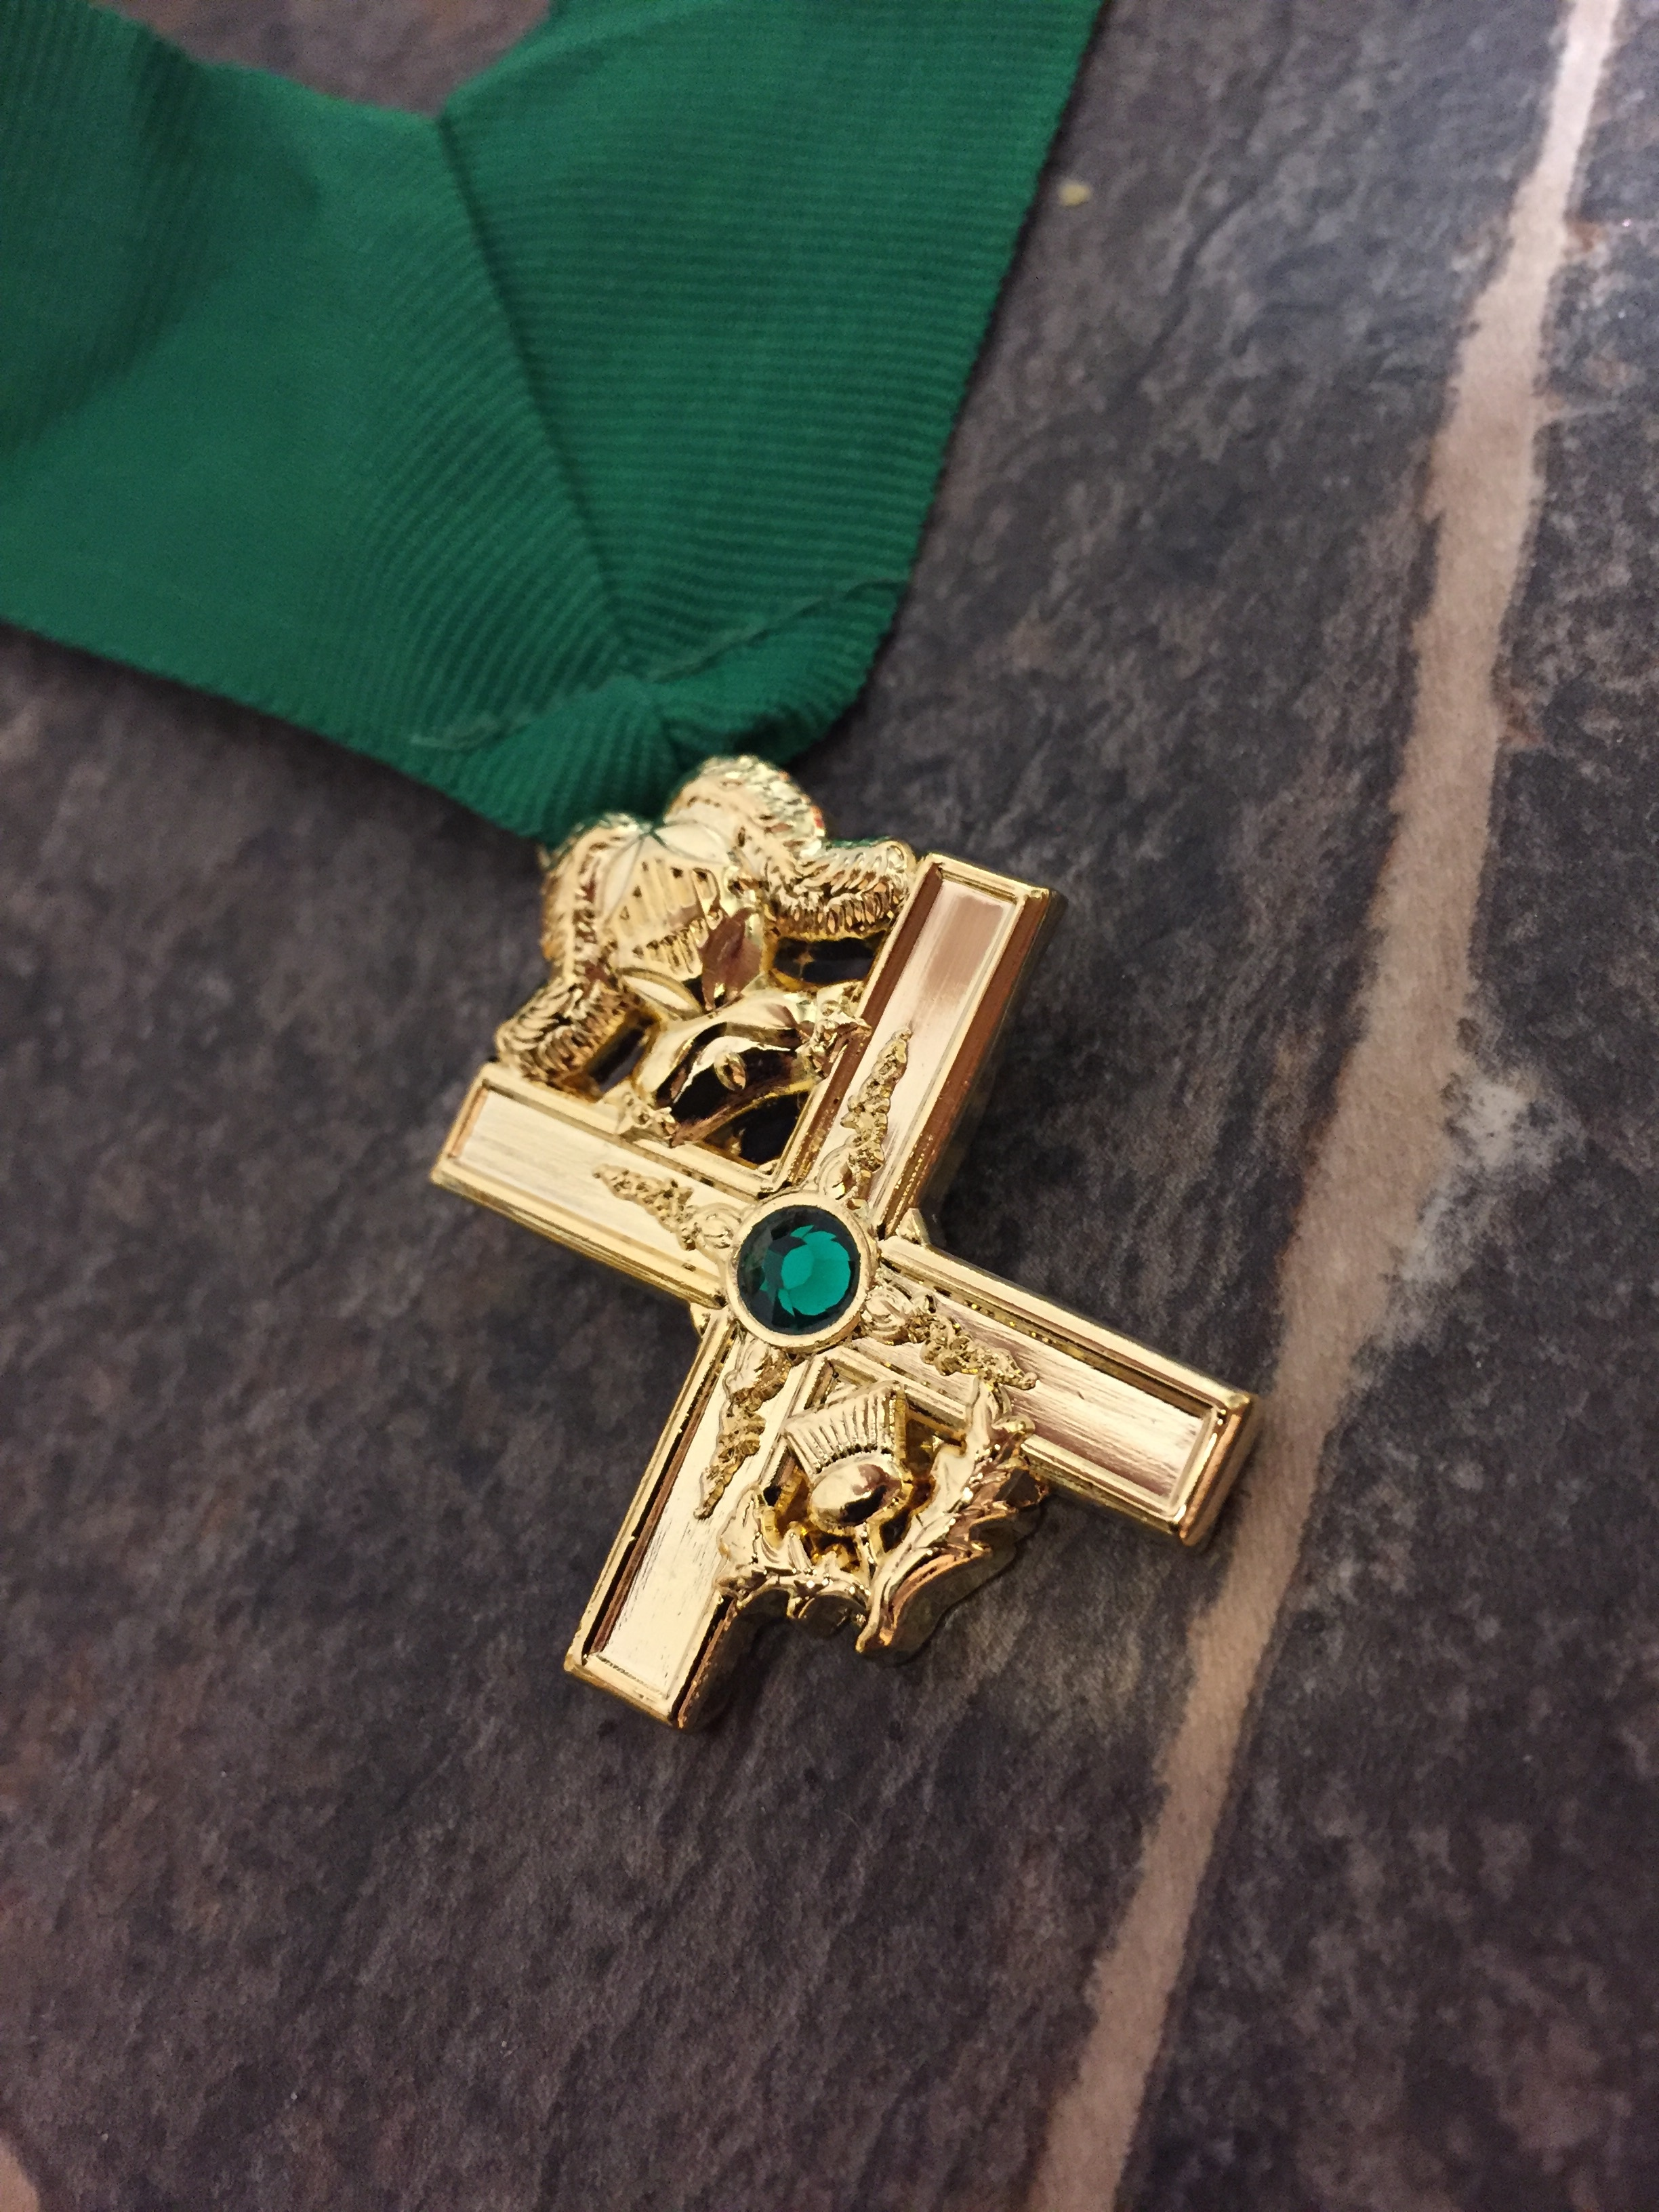 The masters craft knights of saint andrew collar jewel small knights of saint andrew collar jewel small mozeypictures Image collections